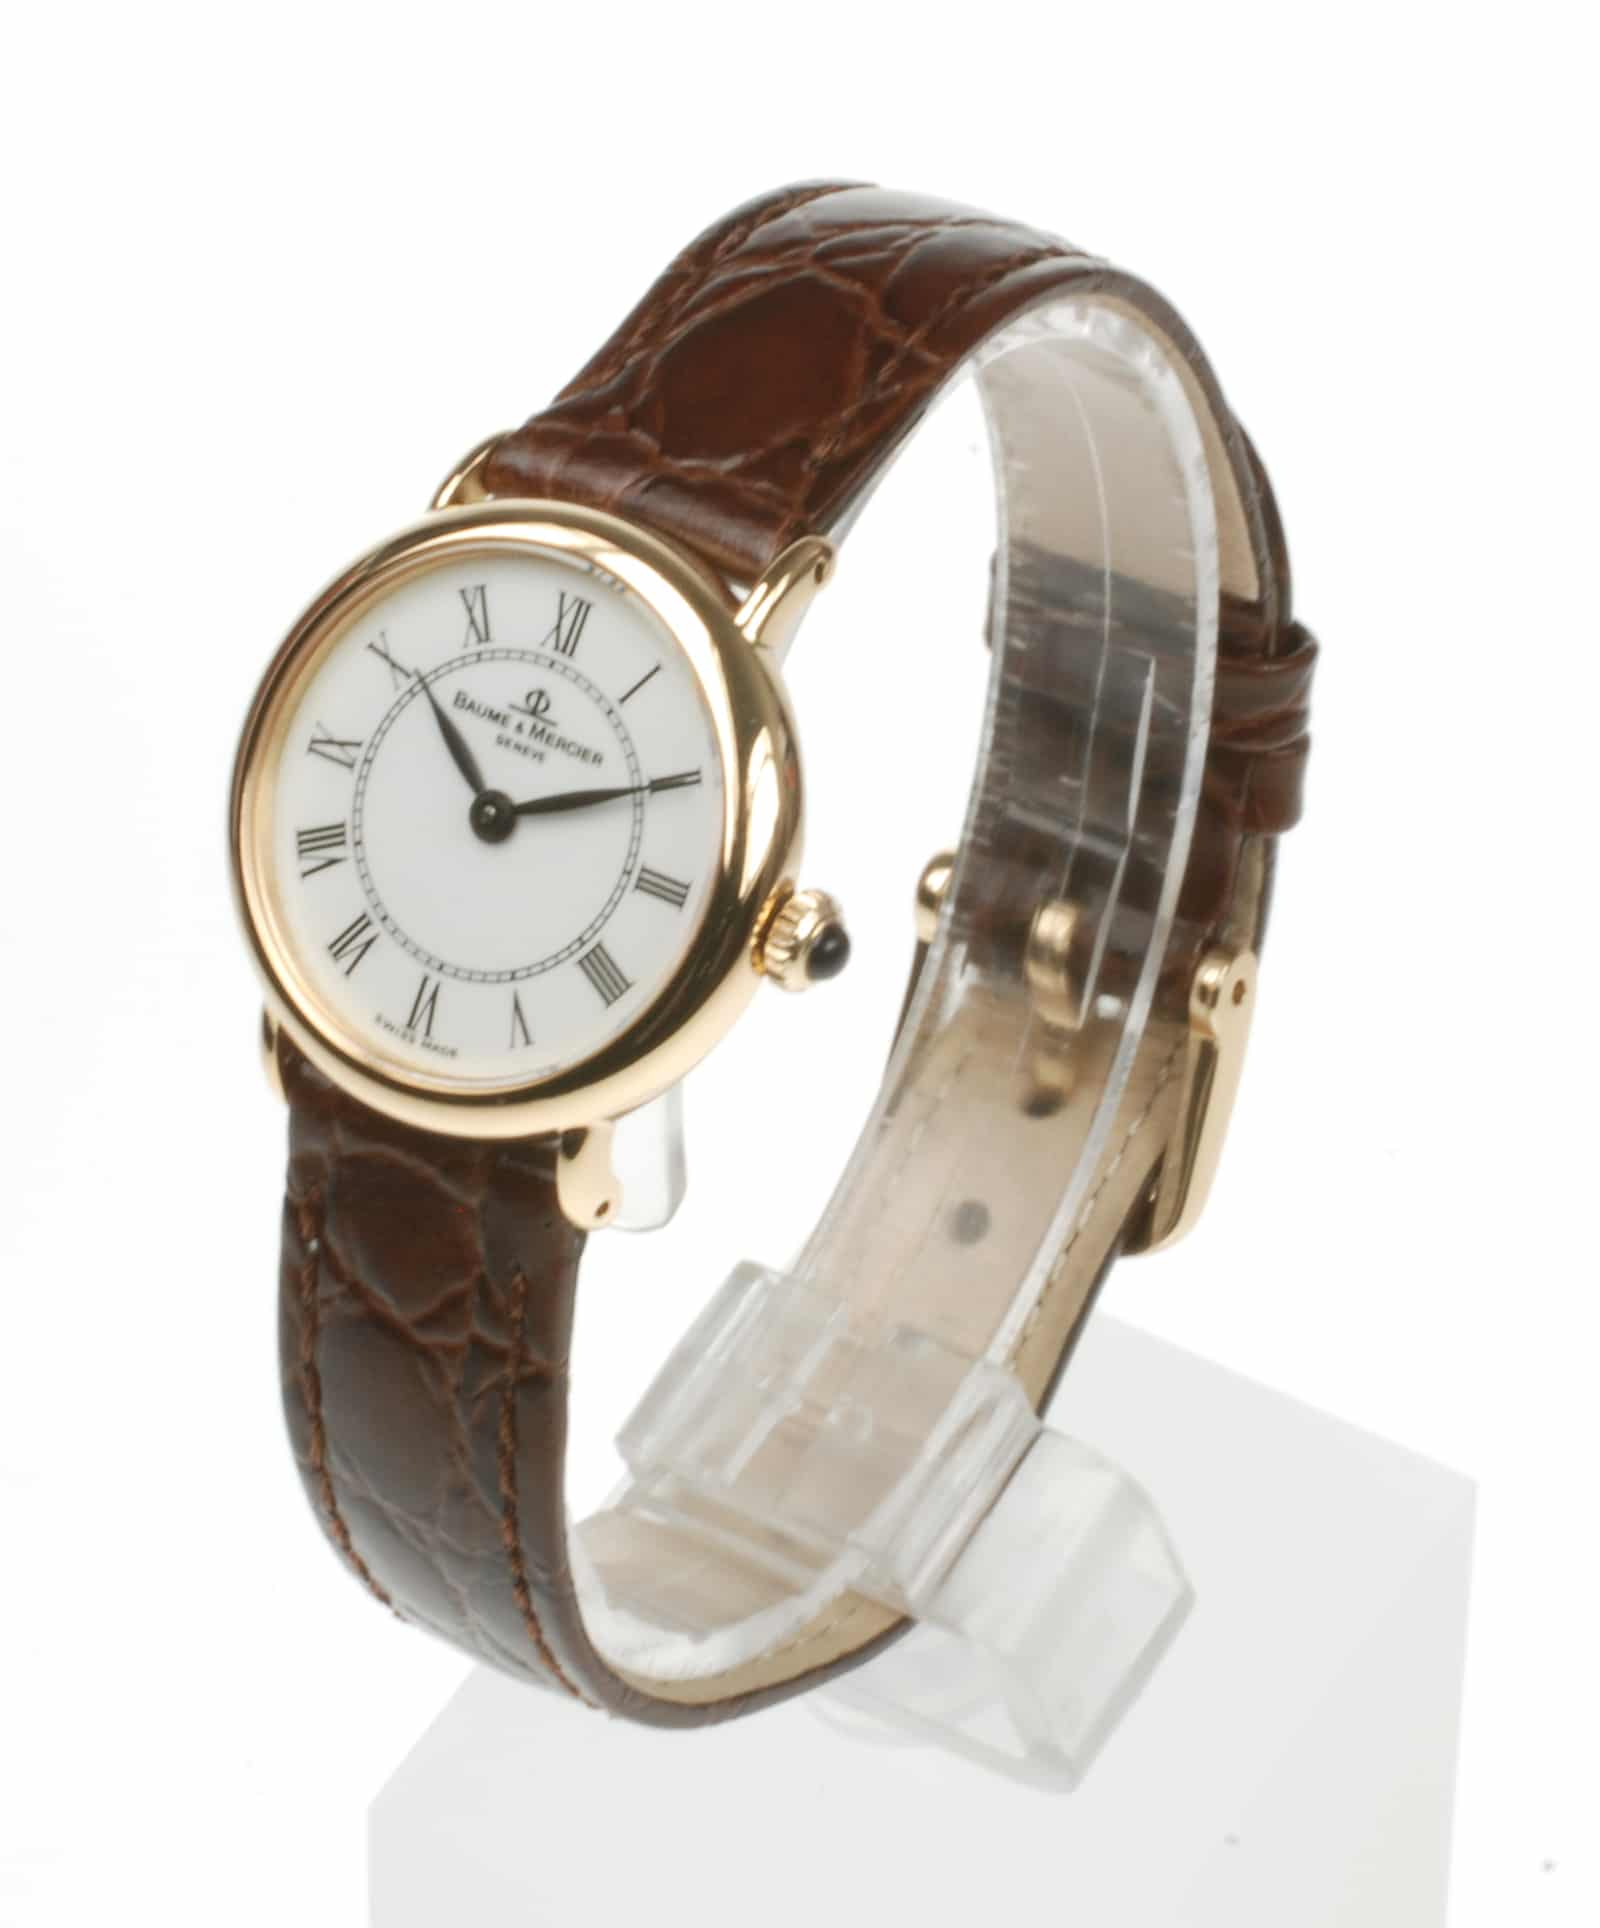 Baume & Mercier Preowned Watch